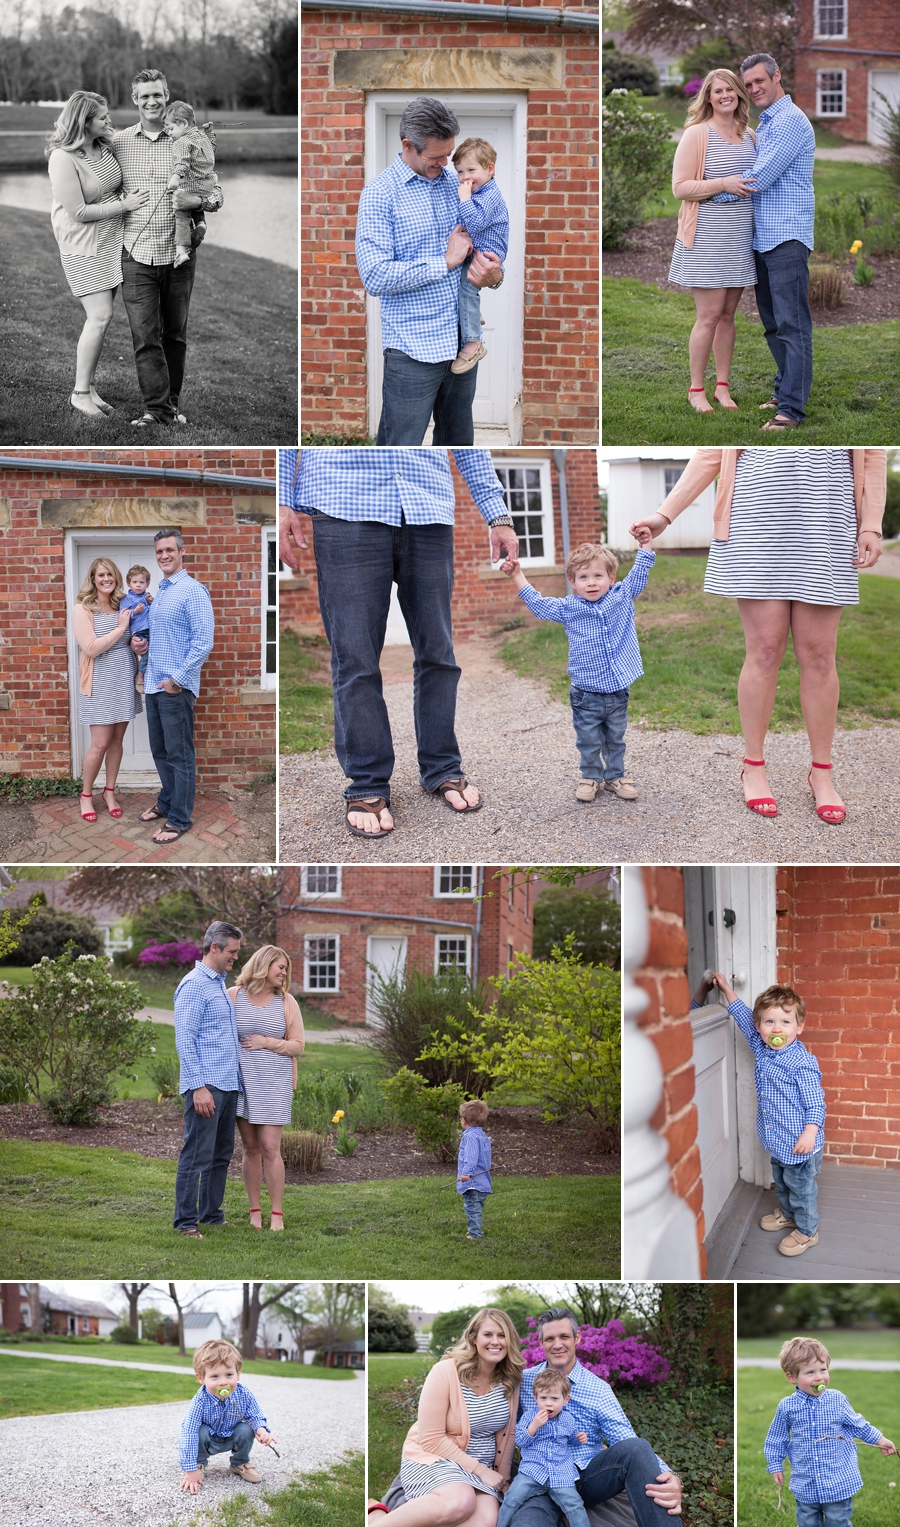 Spring Mini Sessions: Day 2